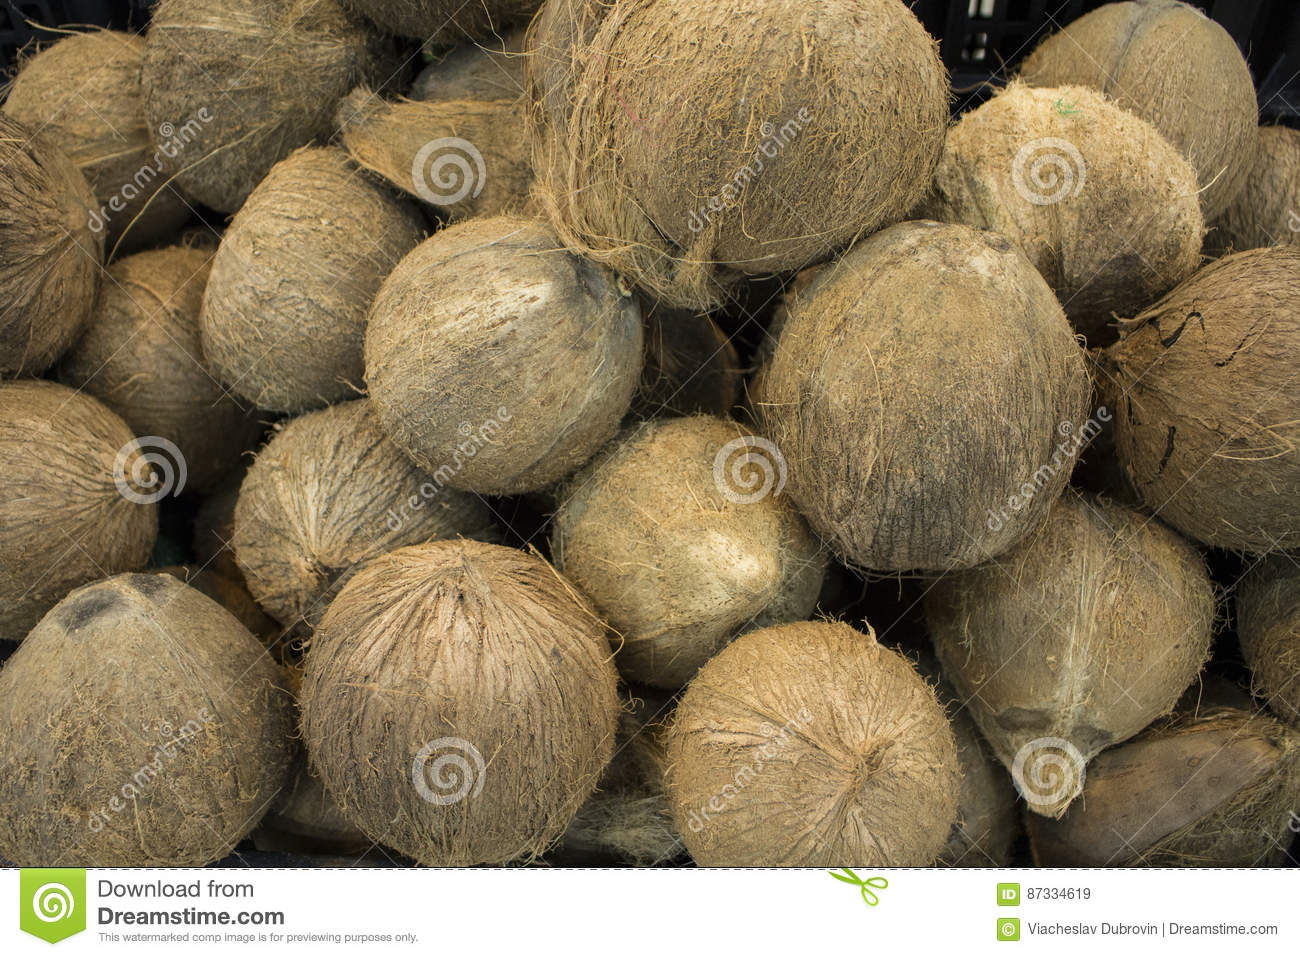 whole coconuts in pile closeup photo. exotic fruit or nut. brown